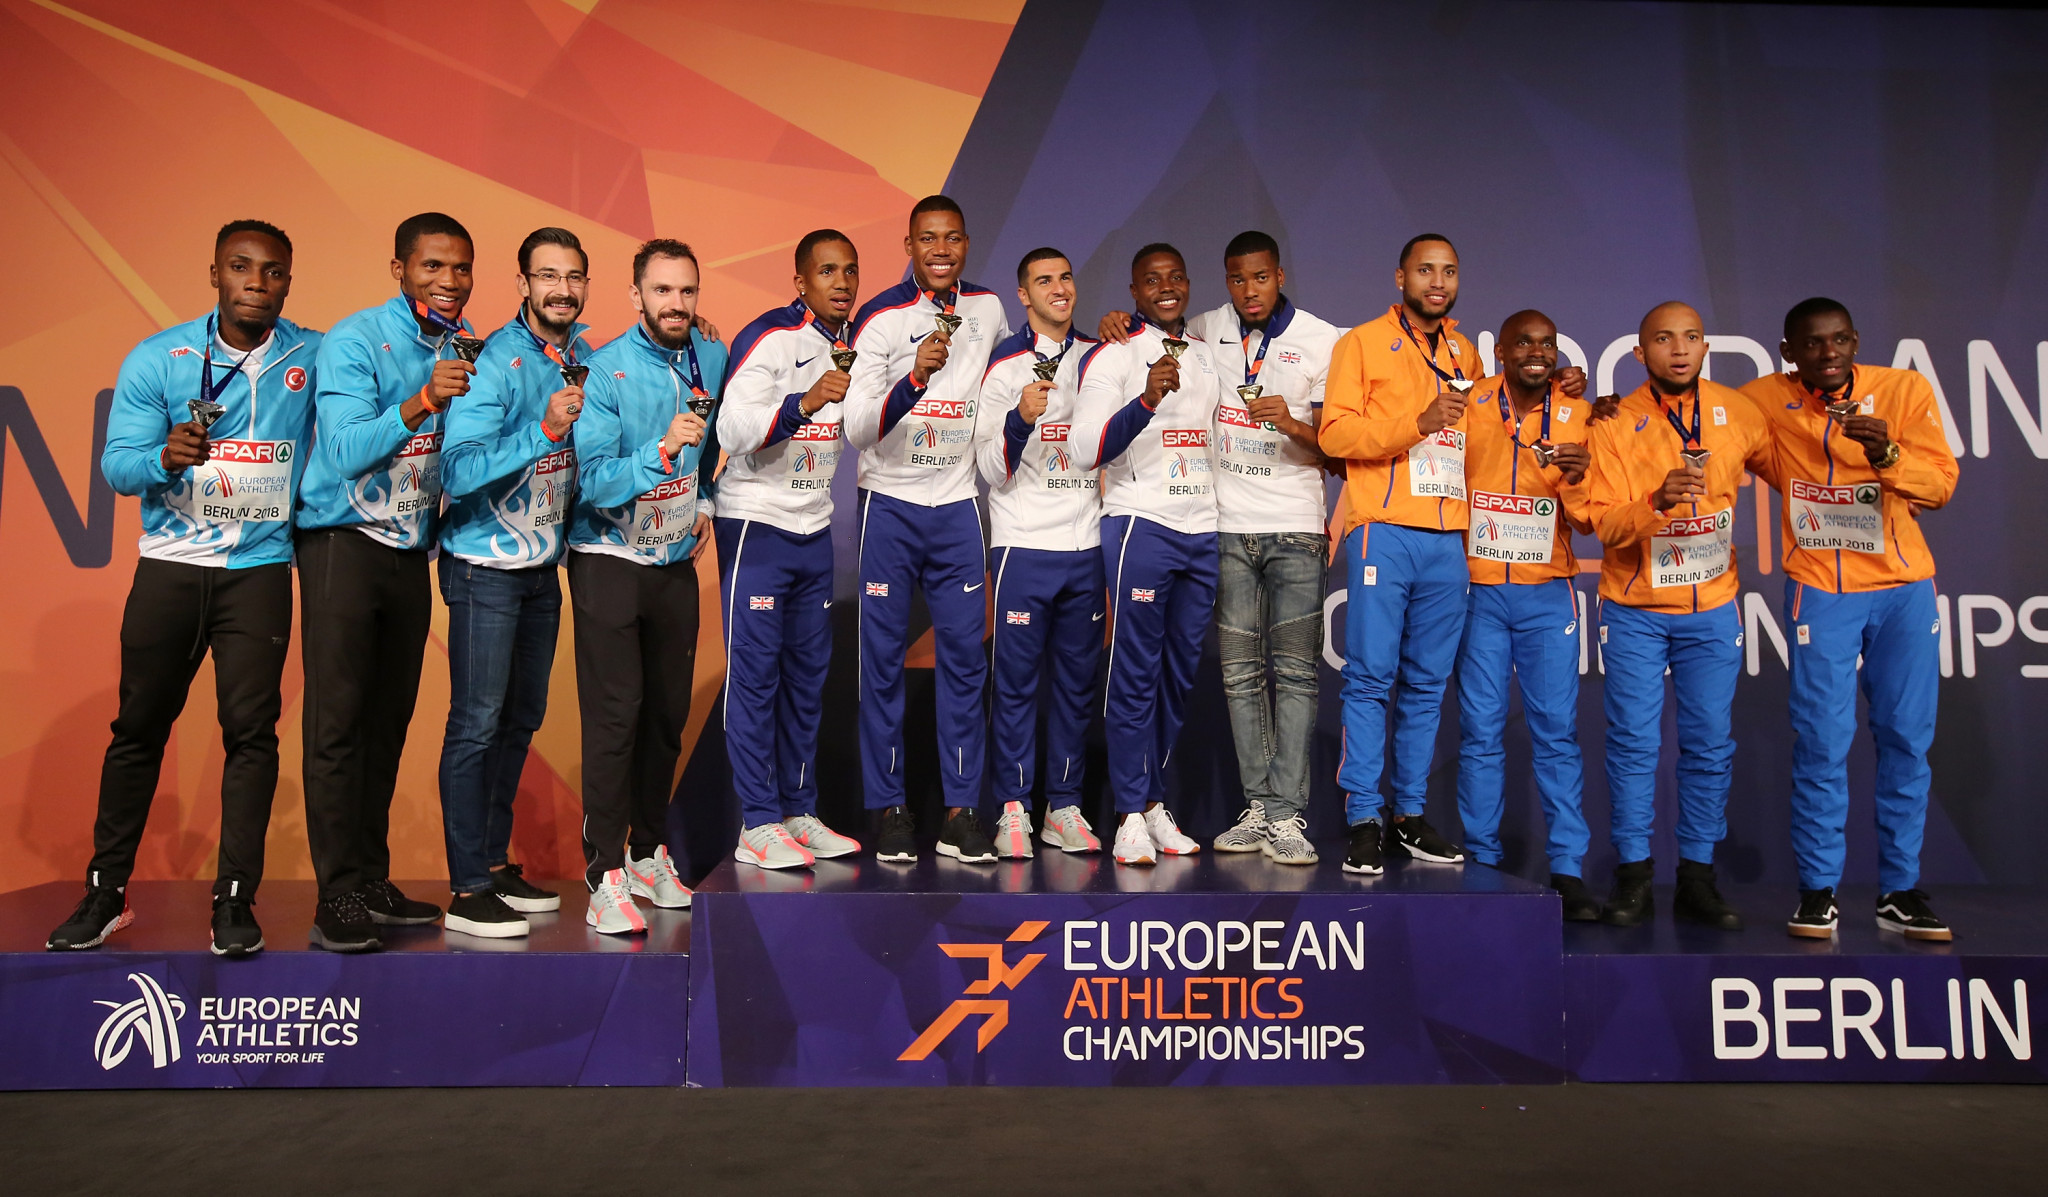 The European Championships was cited in the ASOIF report as a potential example of an event bringing stakeholders together to deliver a mutually beneficial product ©Getty Images